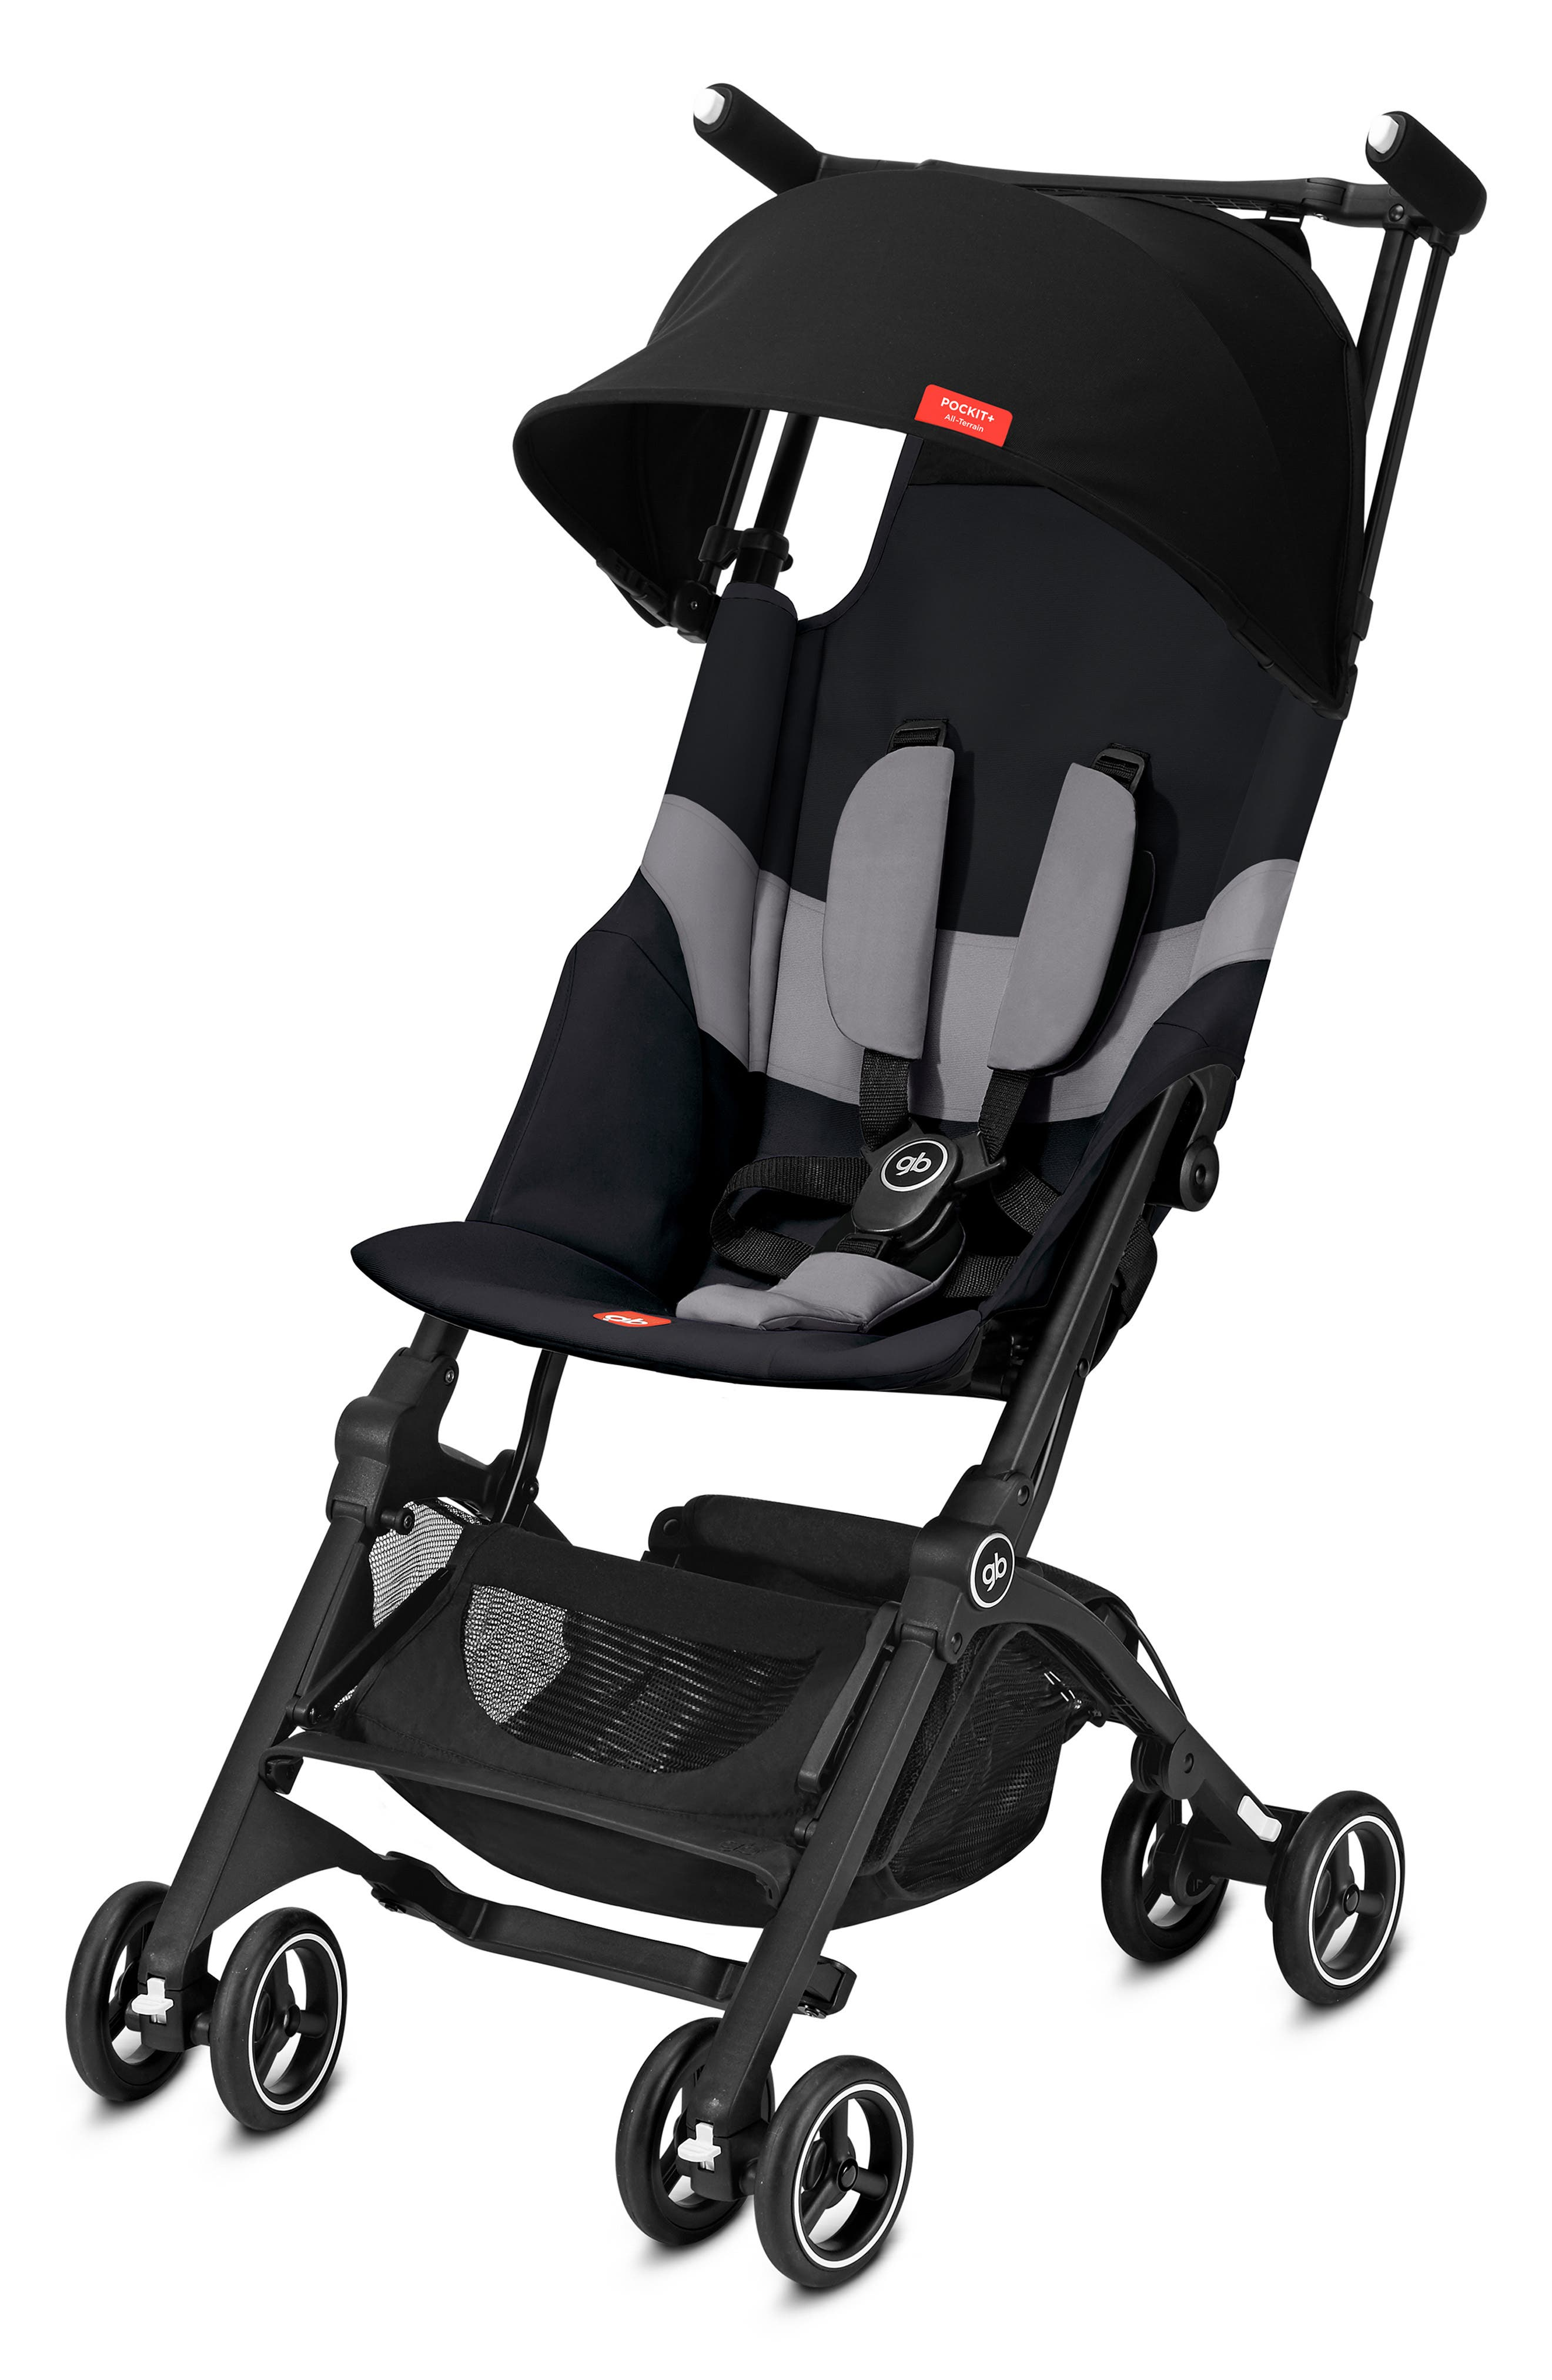 Infant Cybex Gb Pockit Stroller With All Terrain Wheels Size One Size  Black